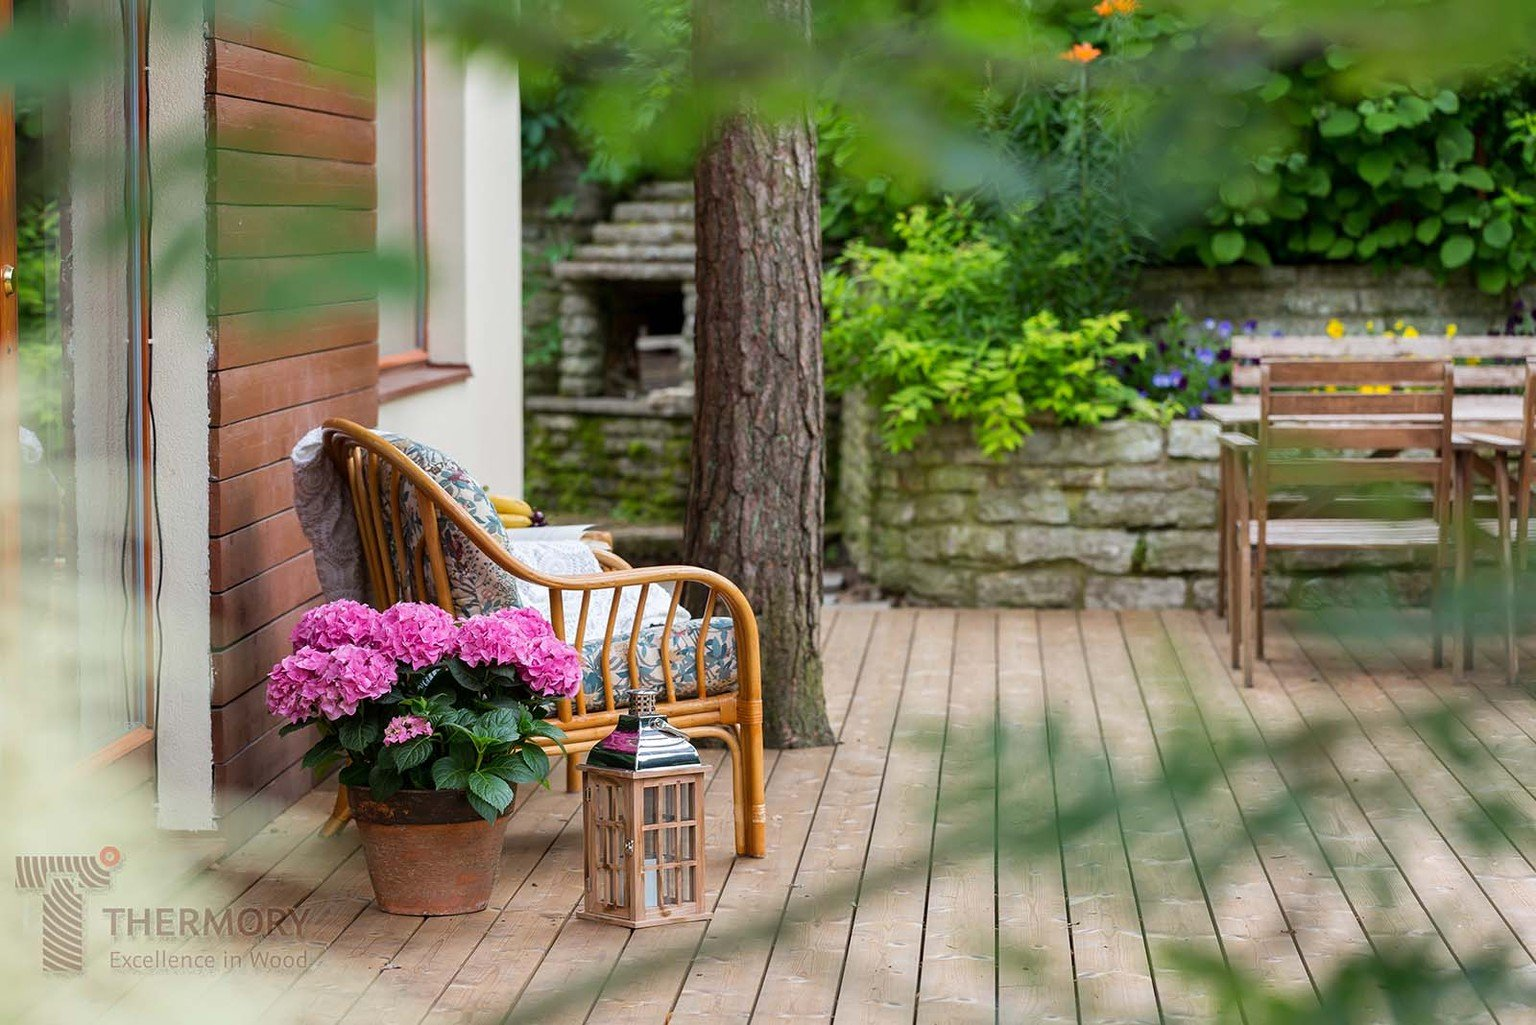 Thermory-Pine-Decking_D45J-26x118_PaCS_Estonia_-4